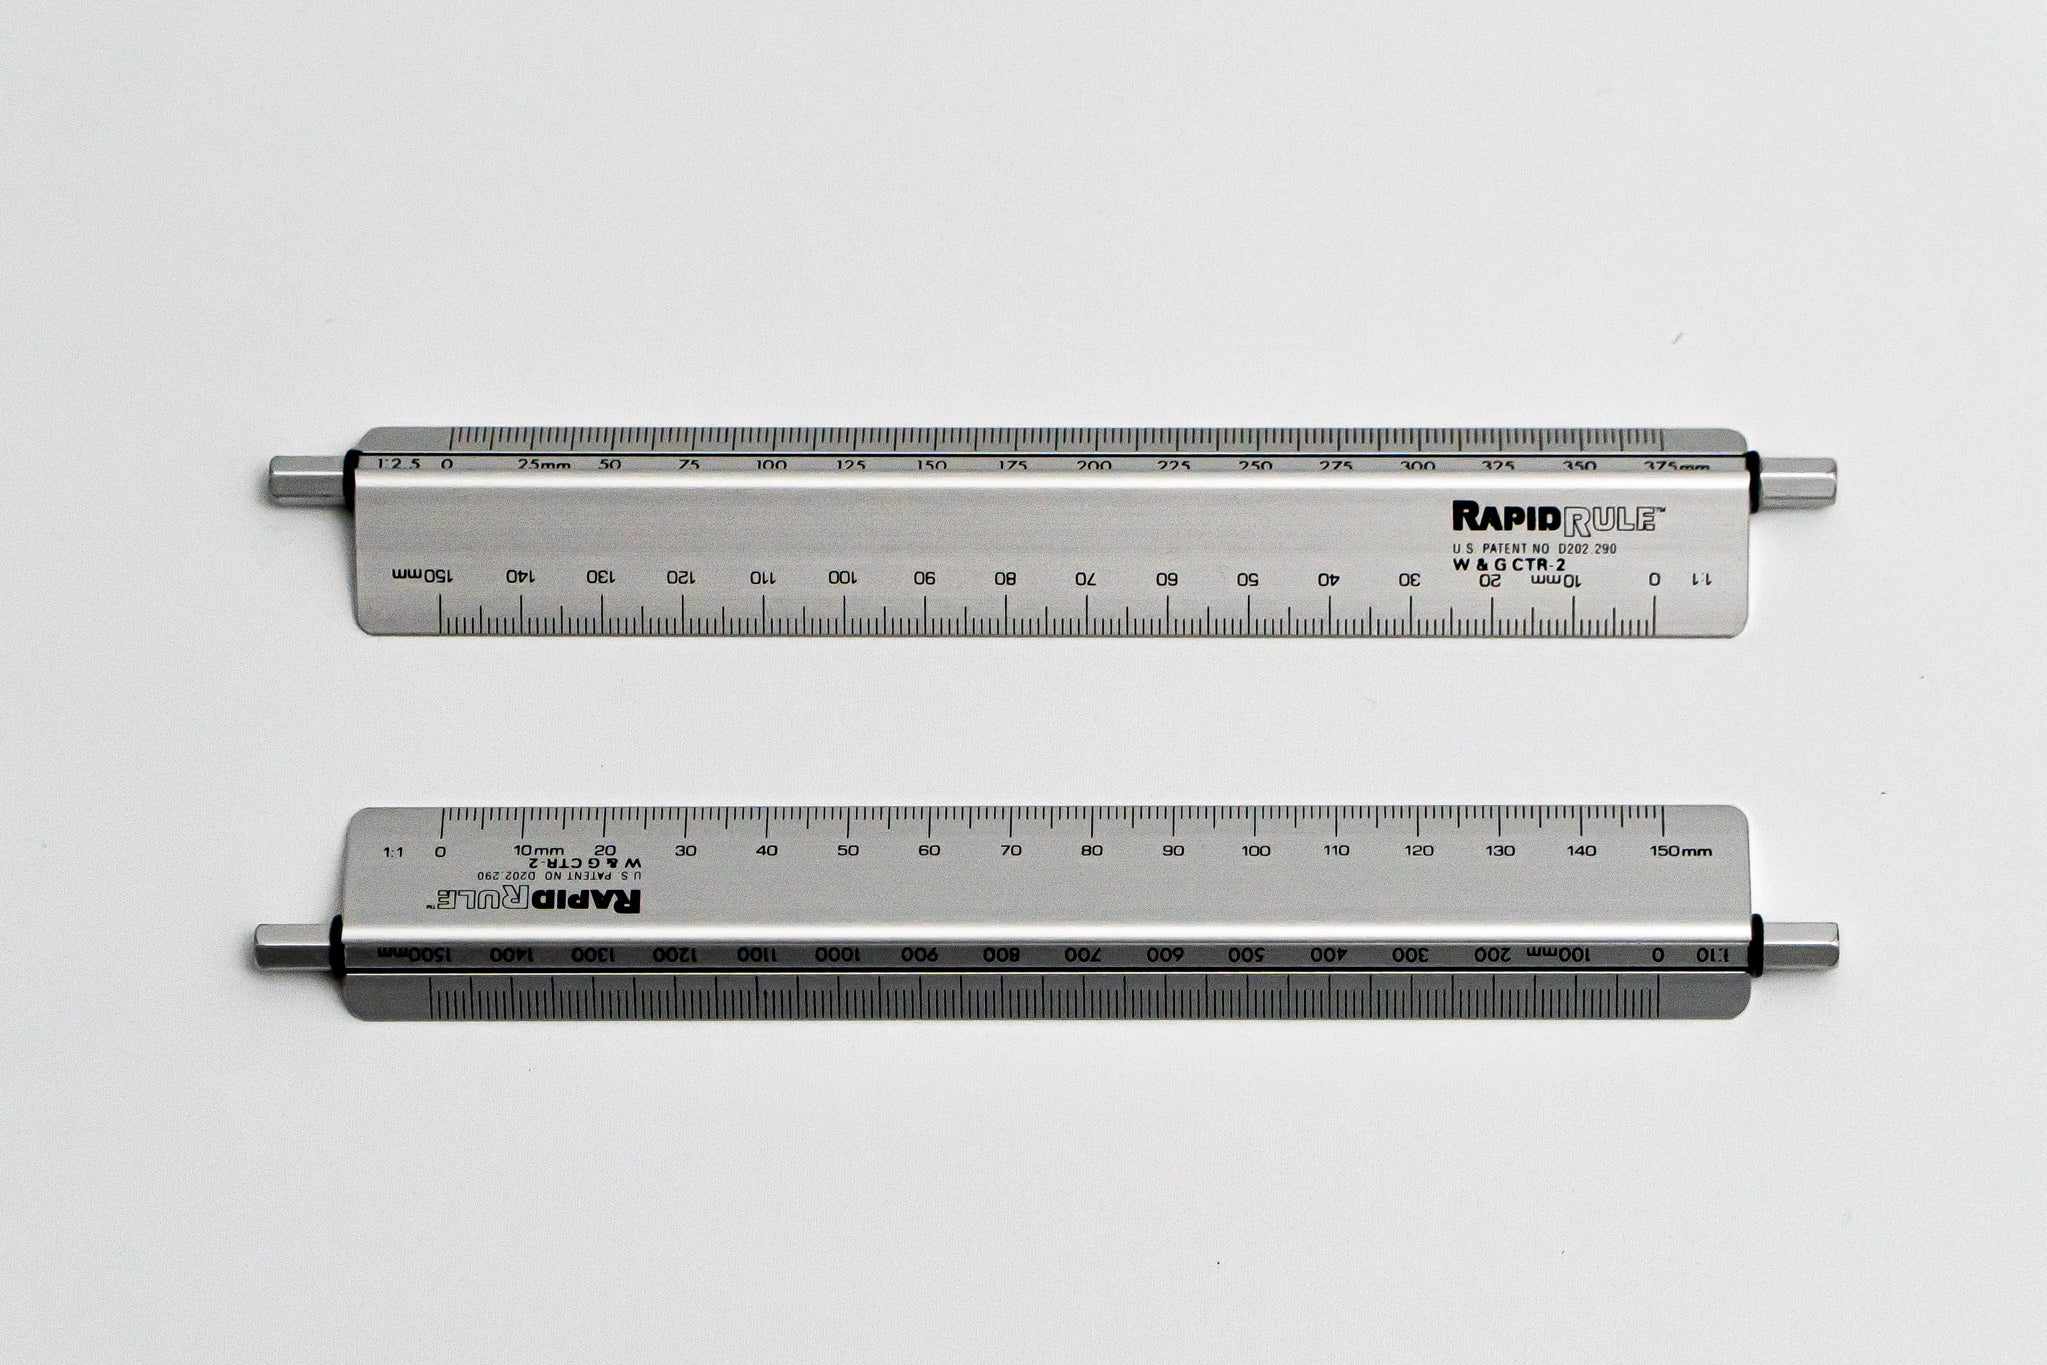 CTR-2 Rapid rule, 1:1, 2.5, 5, 10, 20, 50, 100 Length; 150mm, Metal